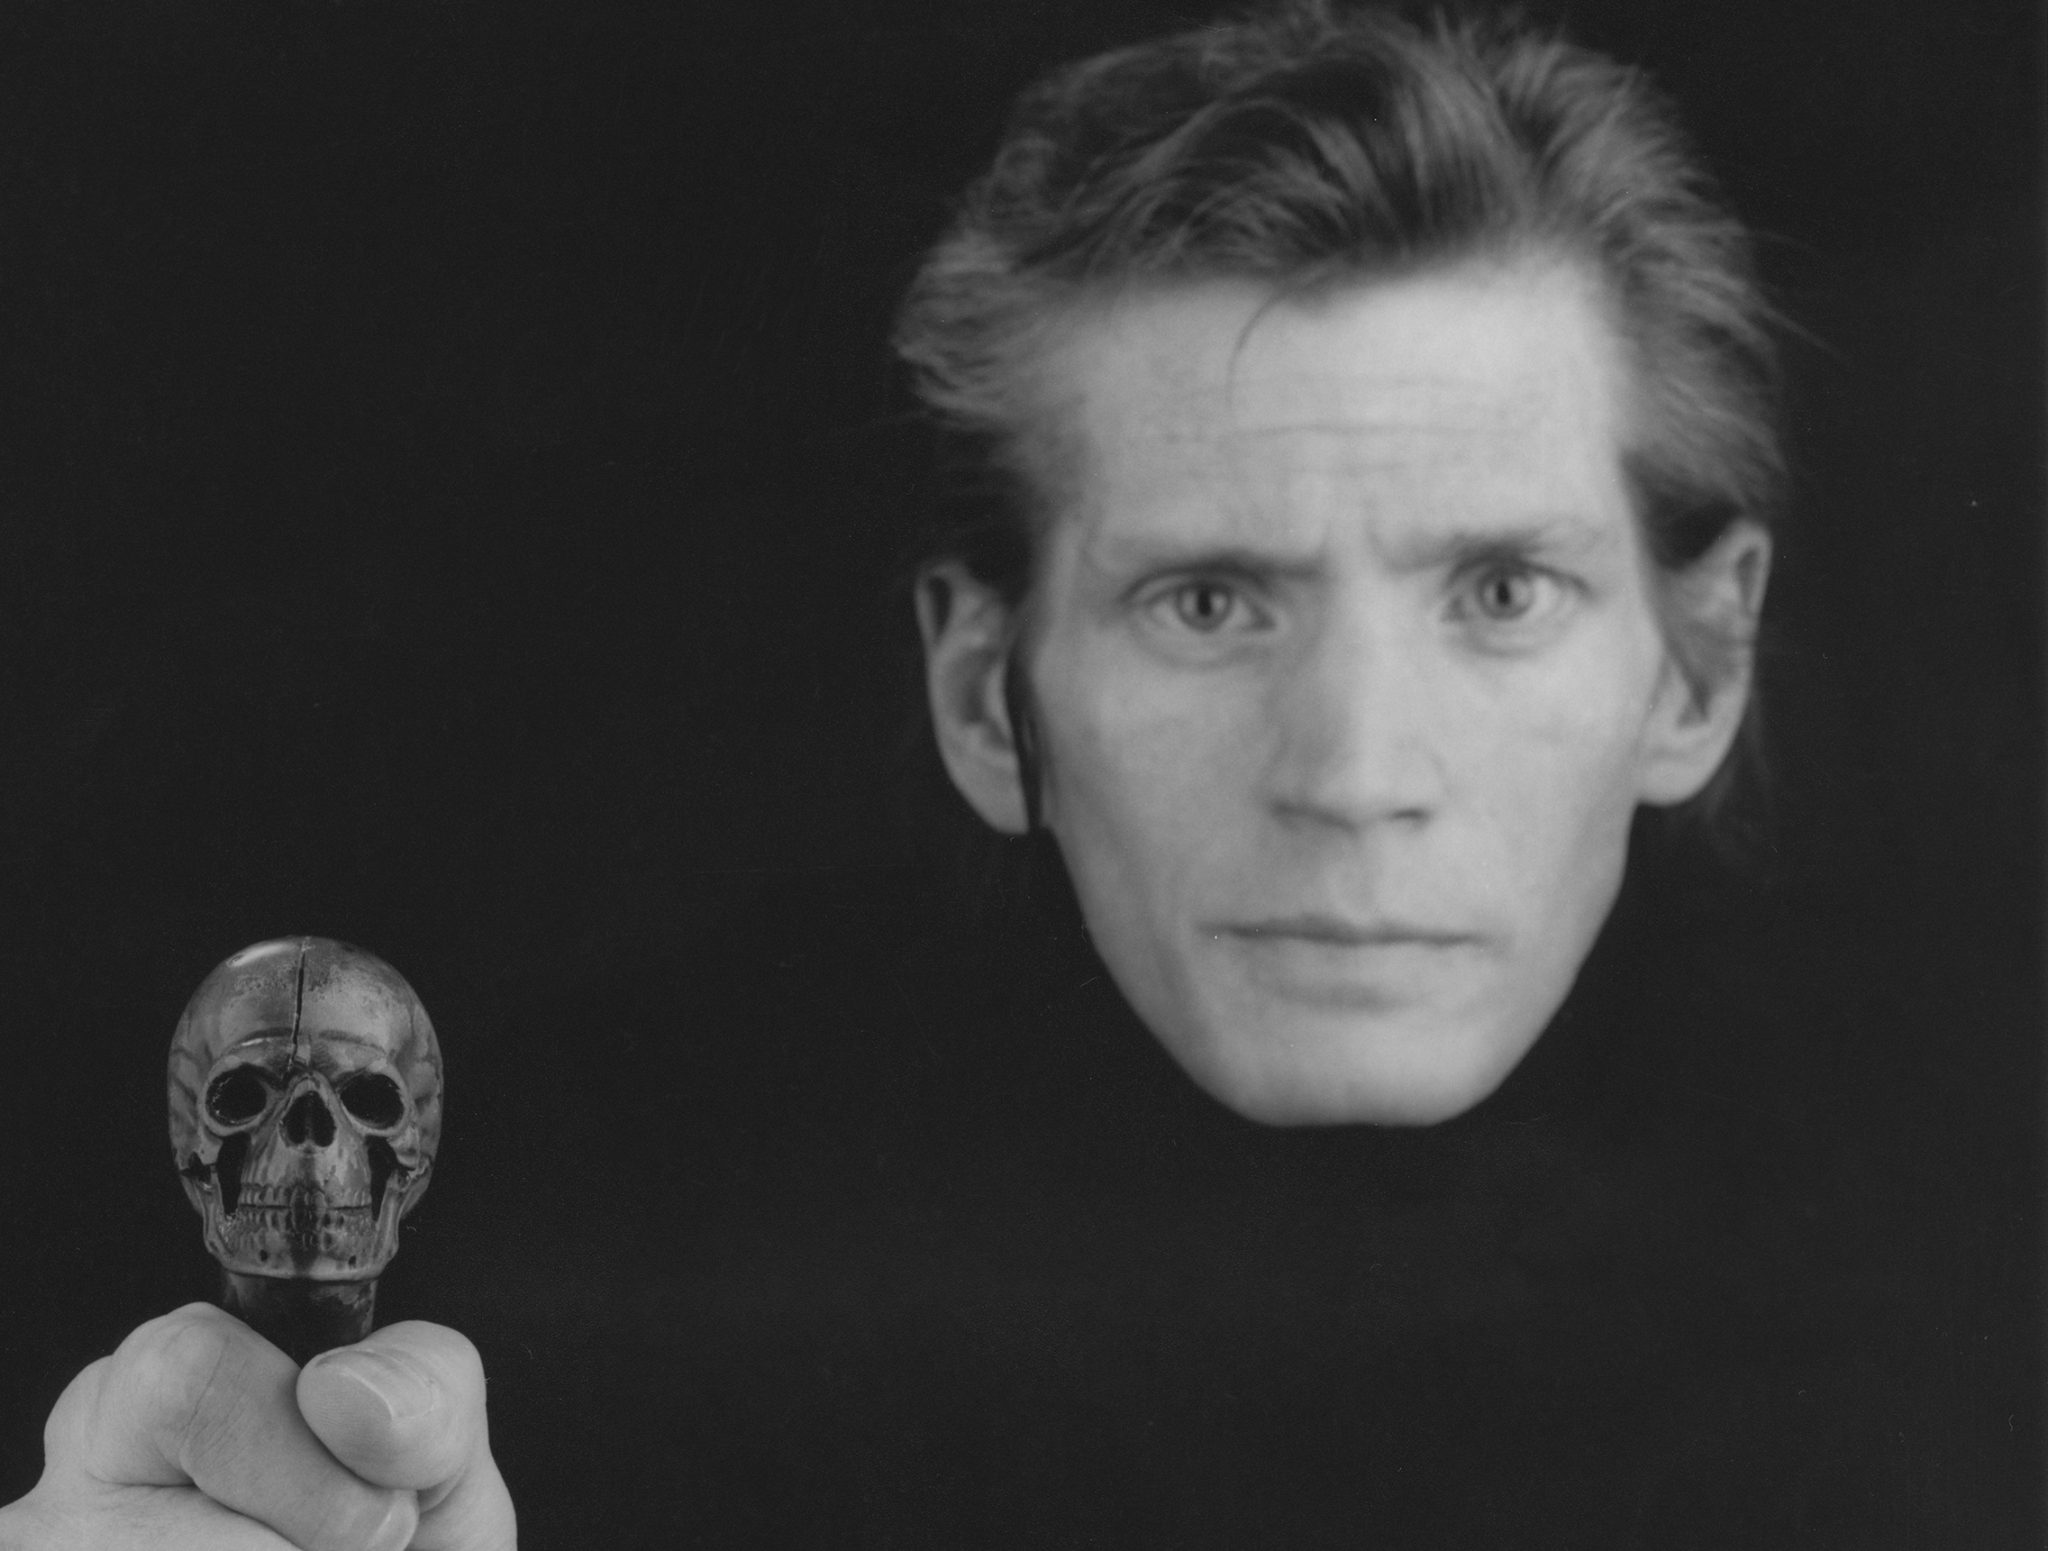 Robert Mapplethorpe Self-Portrait, 1988 (PARTICOLARE) © Robert Mapplethorpe Foundation. Used by permission